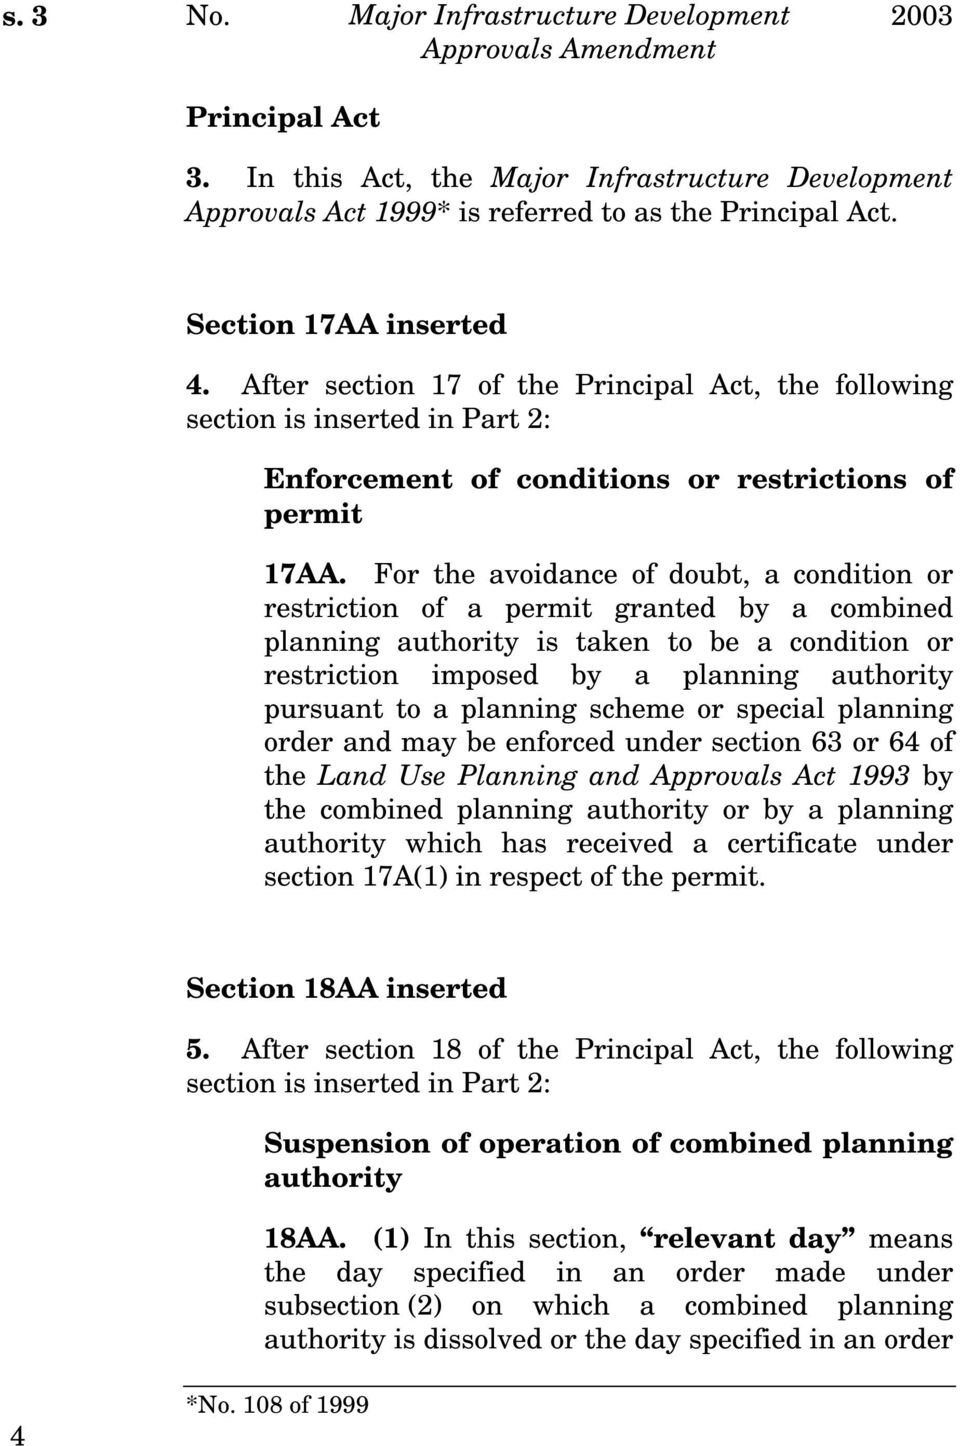 For the avoidance of doubt, a condition or restriction of a permit granted by a combined planning authority is taken to be a condition or restriction imposed by a planning authority pursuant to a